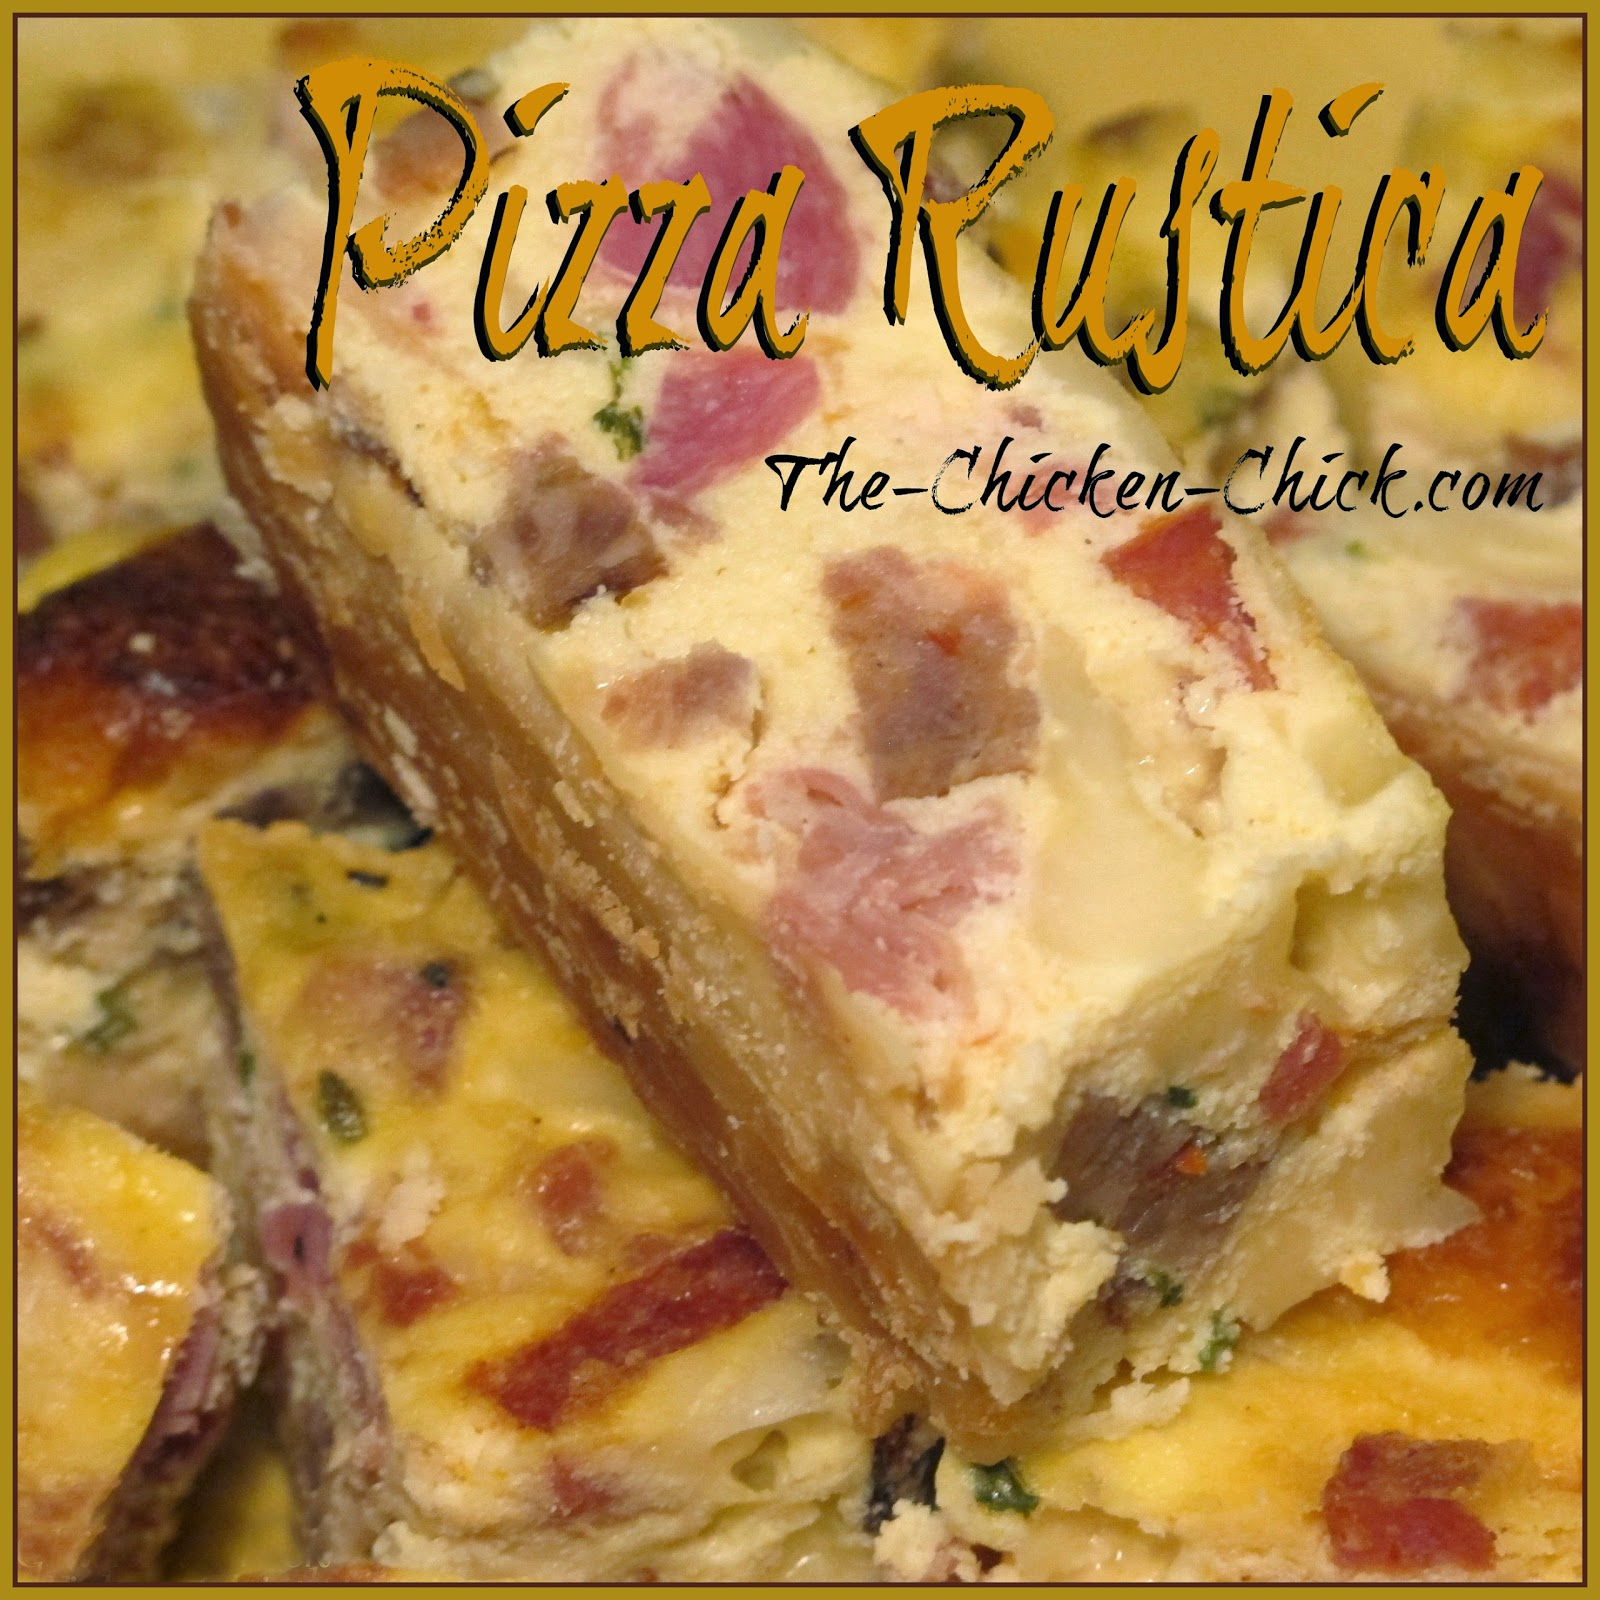 Pizza Rustica, aka: Pizzagaina or Pizza Gain